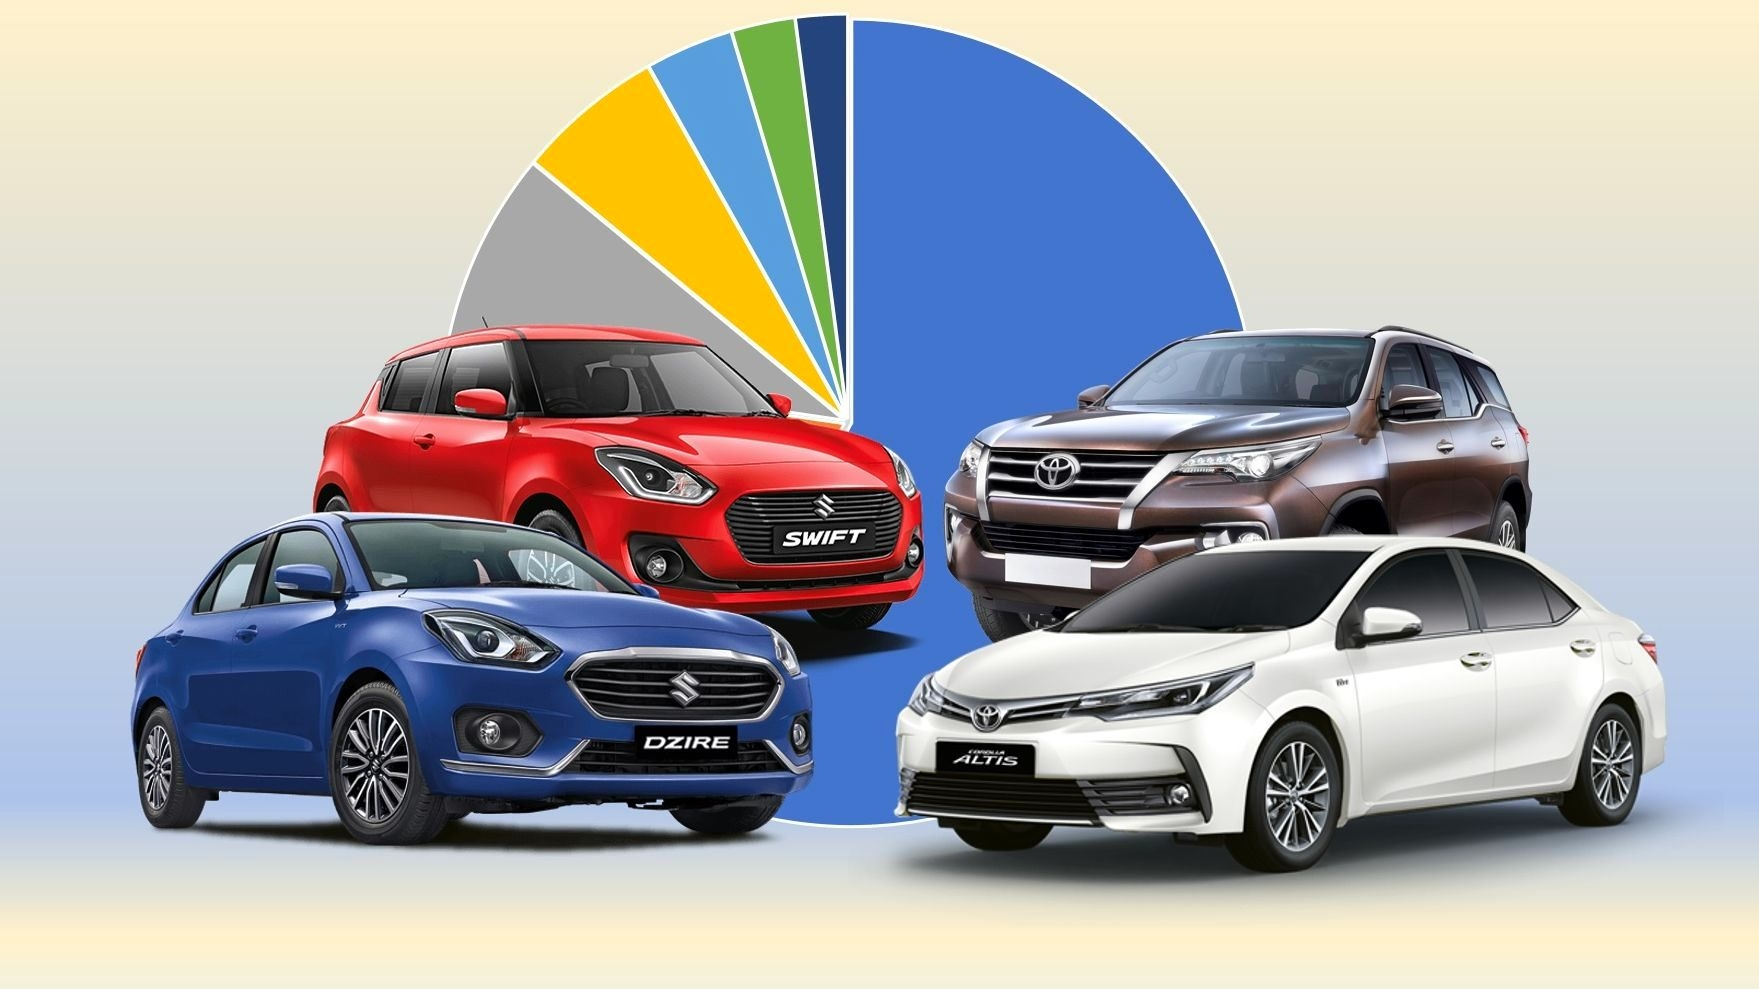 India's Best-Selling SUVs, Hatchbacks and Sedans in The Past Year